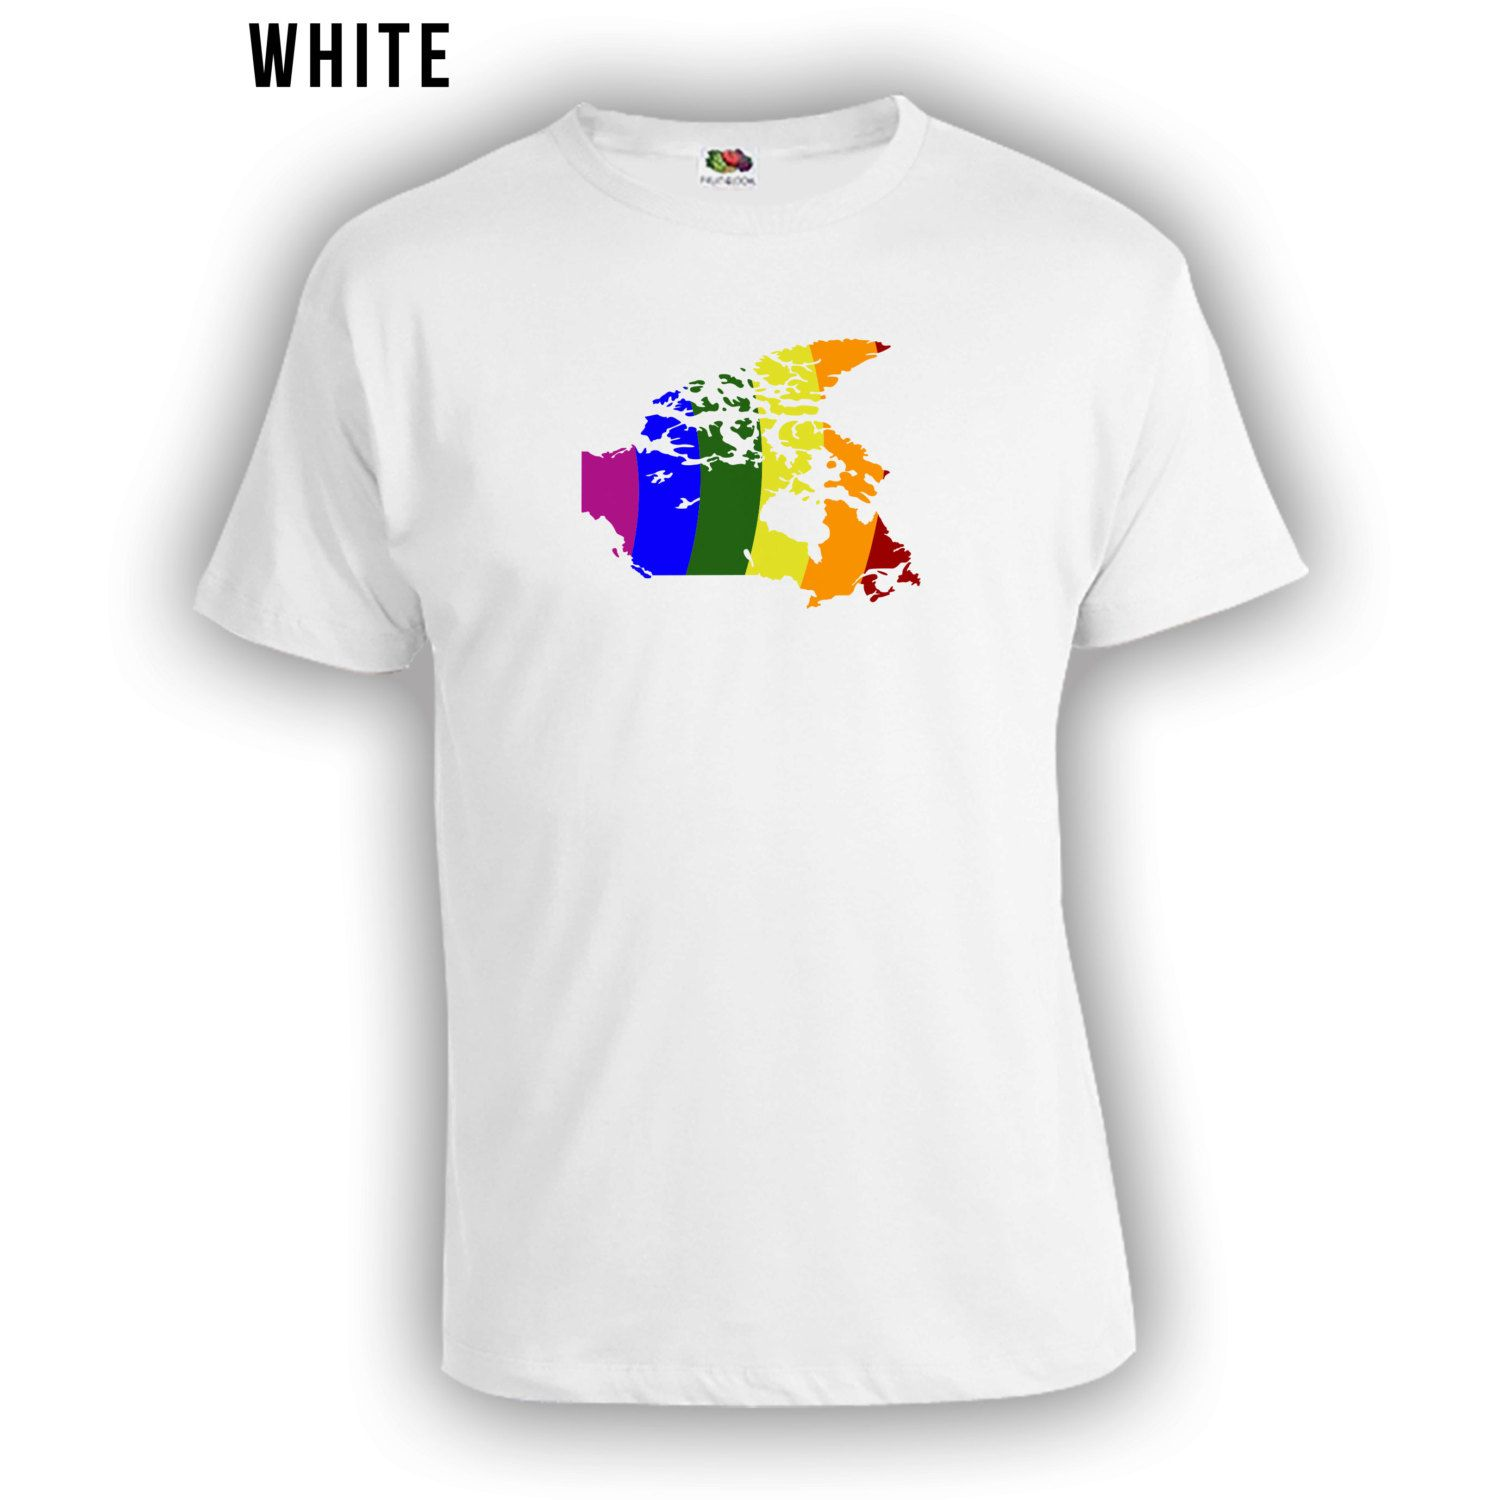 from Ashton rainbow gay pride merchandise